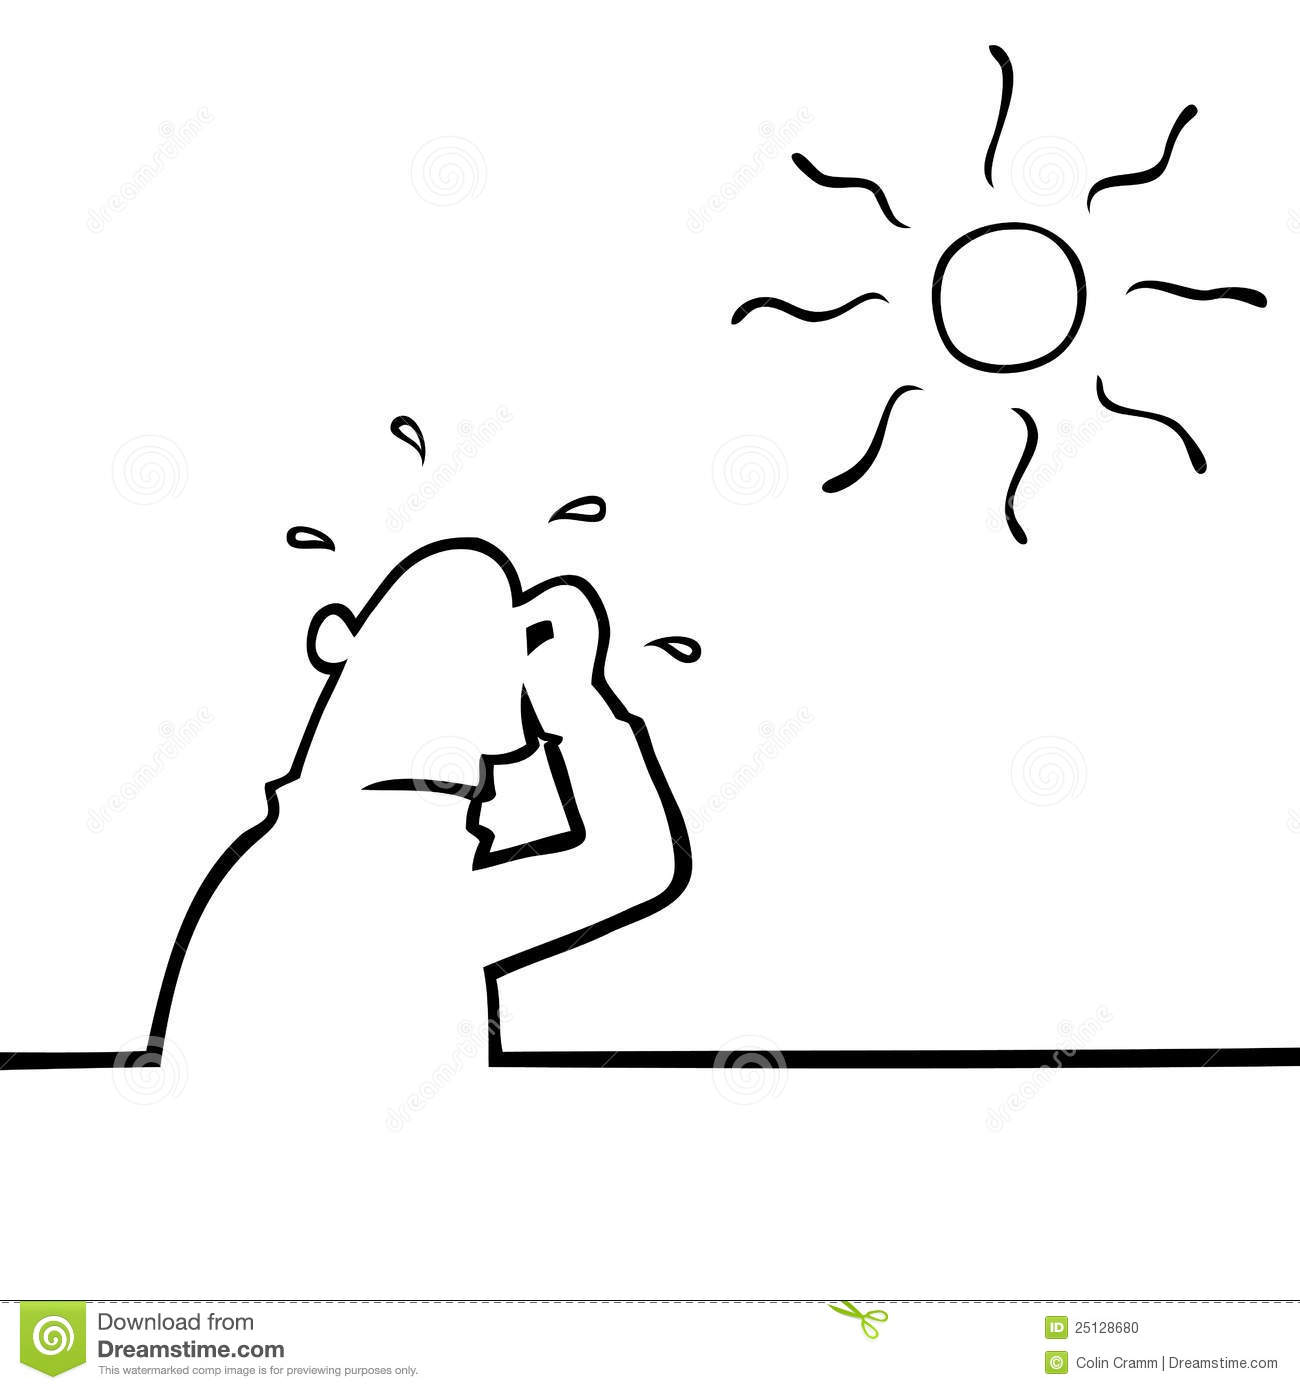 Hot weather clip art black and white